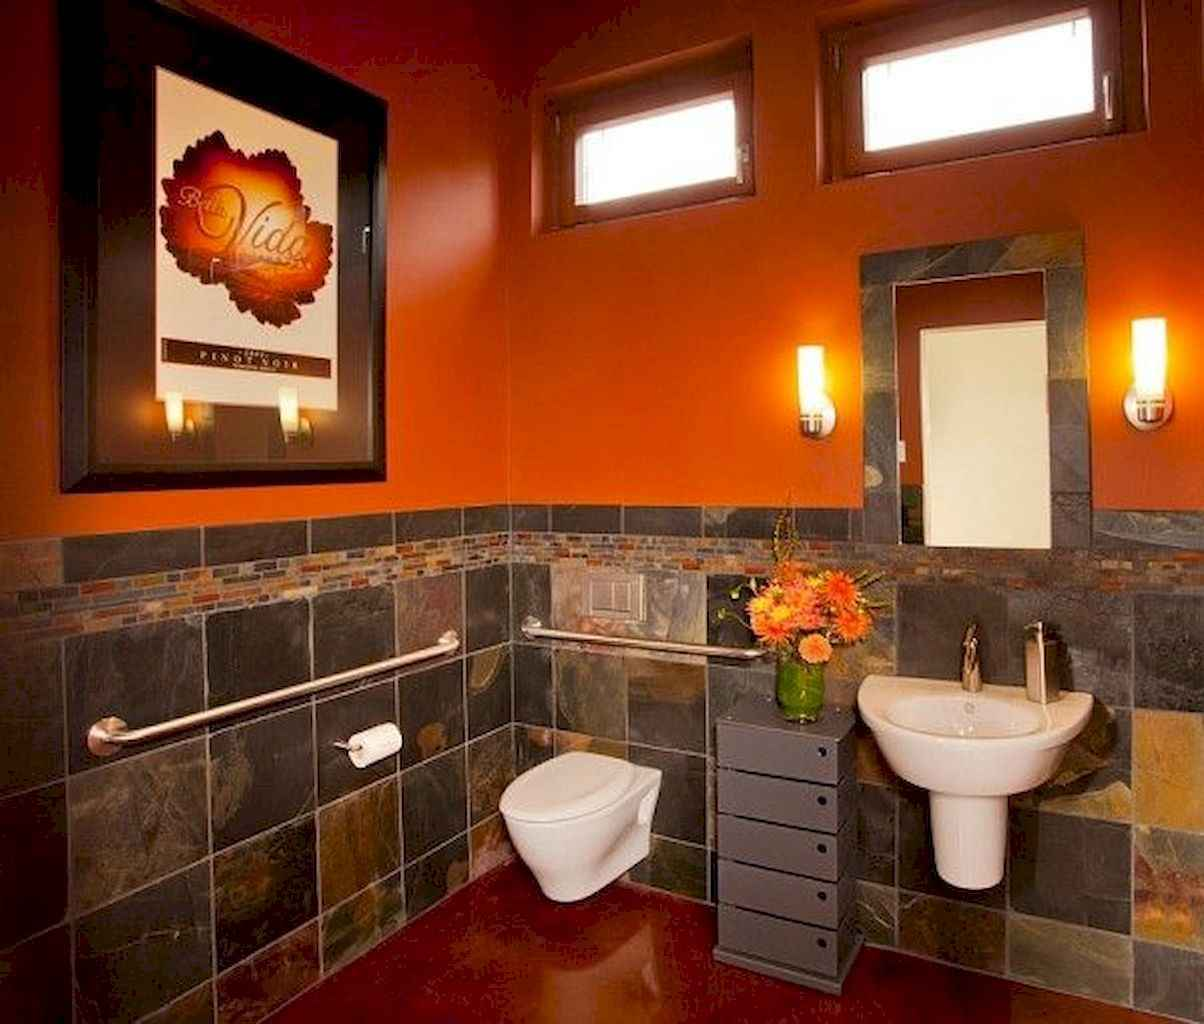 55 cool and relax bathroom design ideas (29)